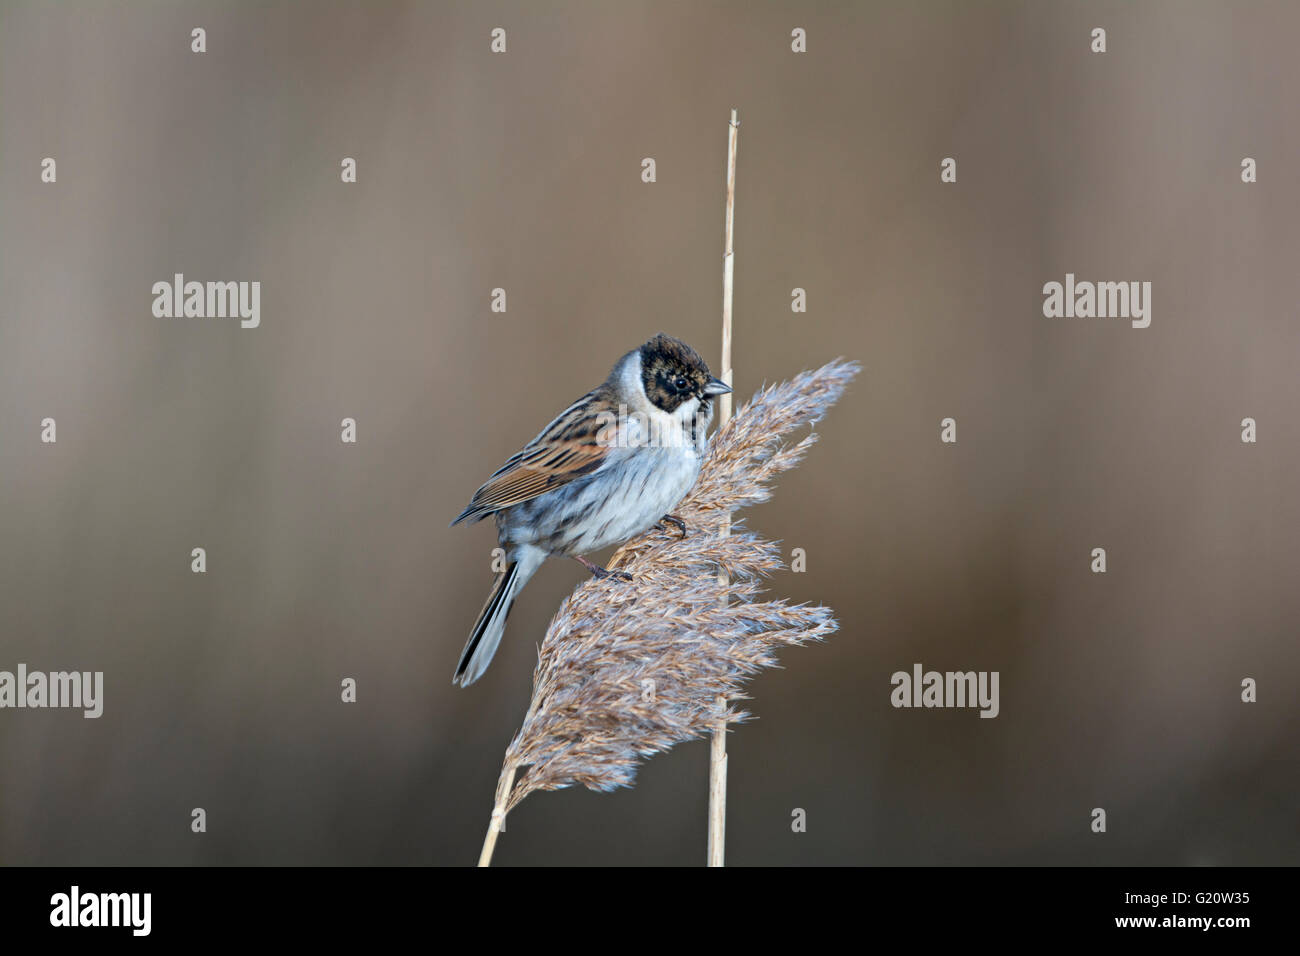 Reed Bunting Emberiza schoeniclus male coming into breeding plumage Cley Norfolk March - Stock Image